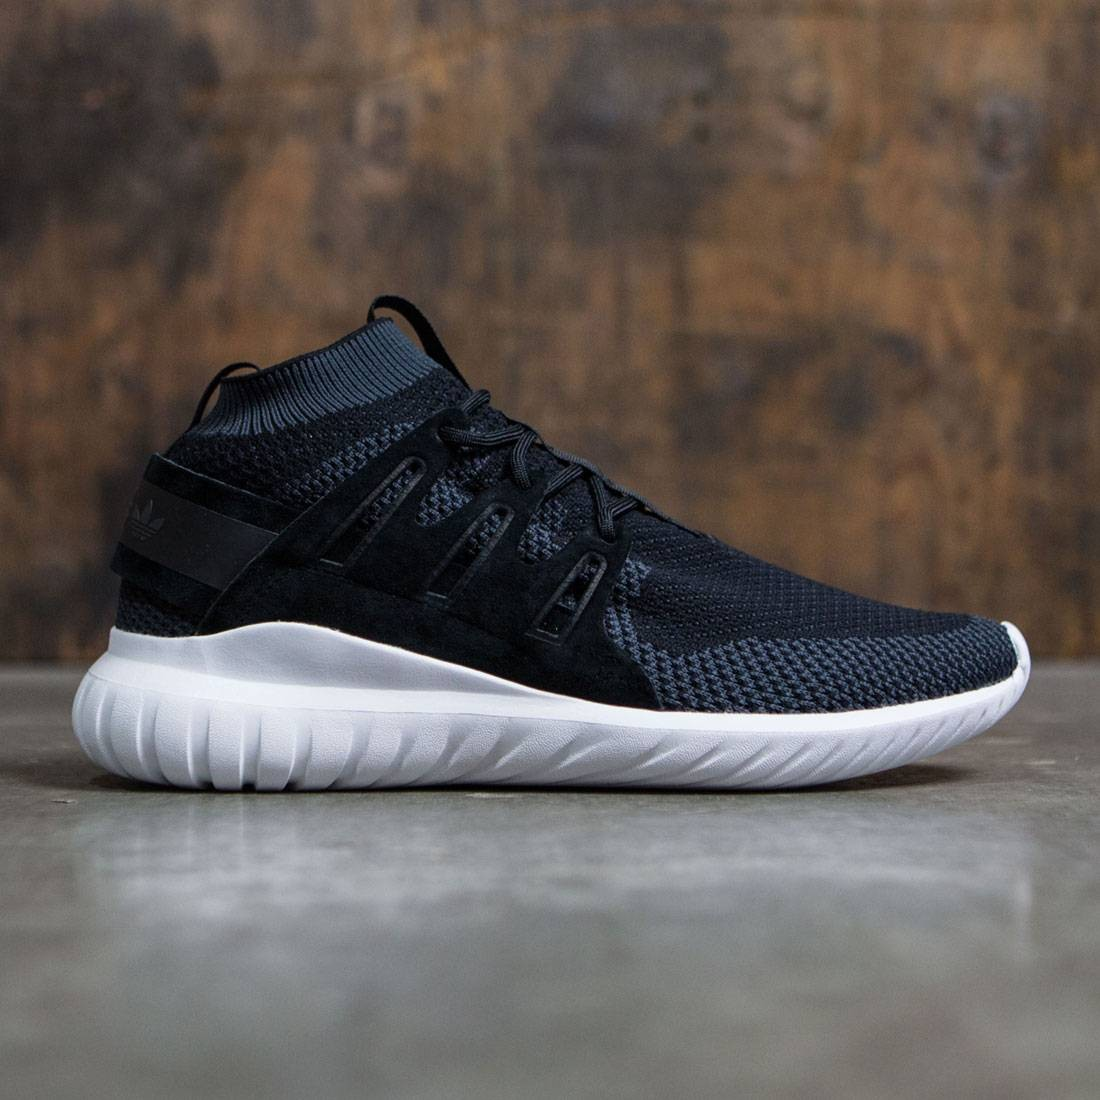 Adidas Men Tubular Nova Primeknit black dark